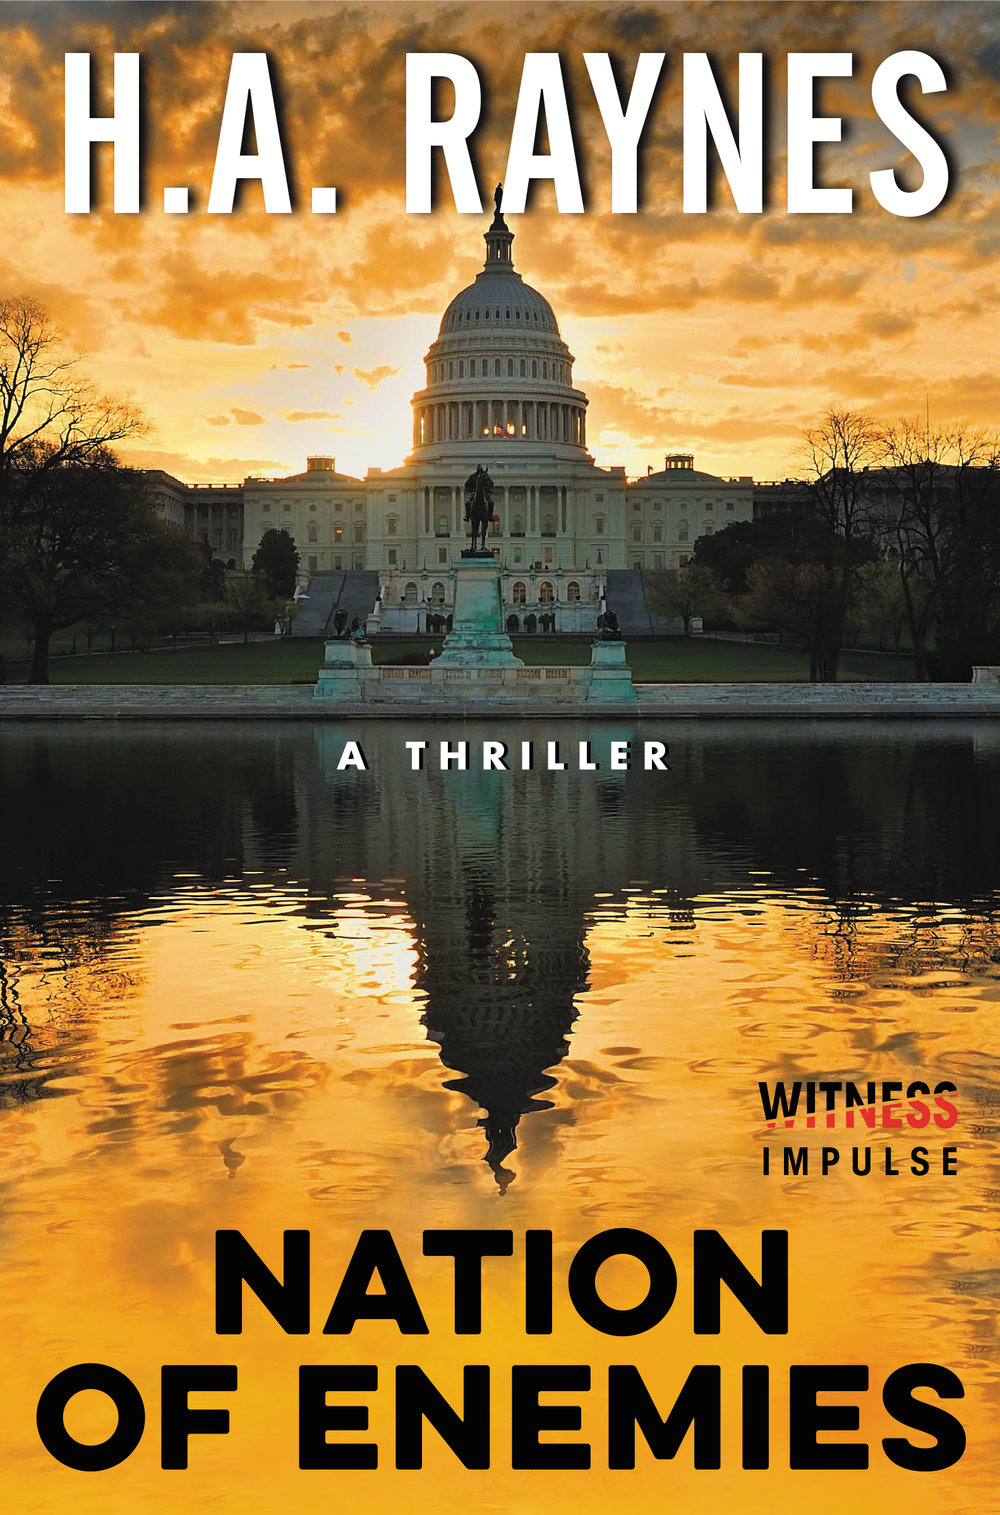 A chilling, suspenseful new thriller in the vein of Michael Crichton and James Rollins. -